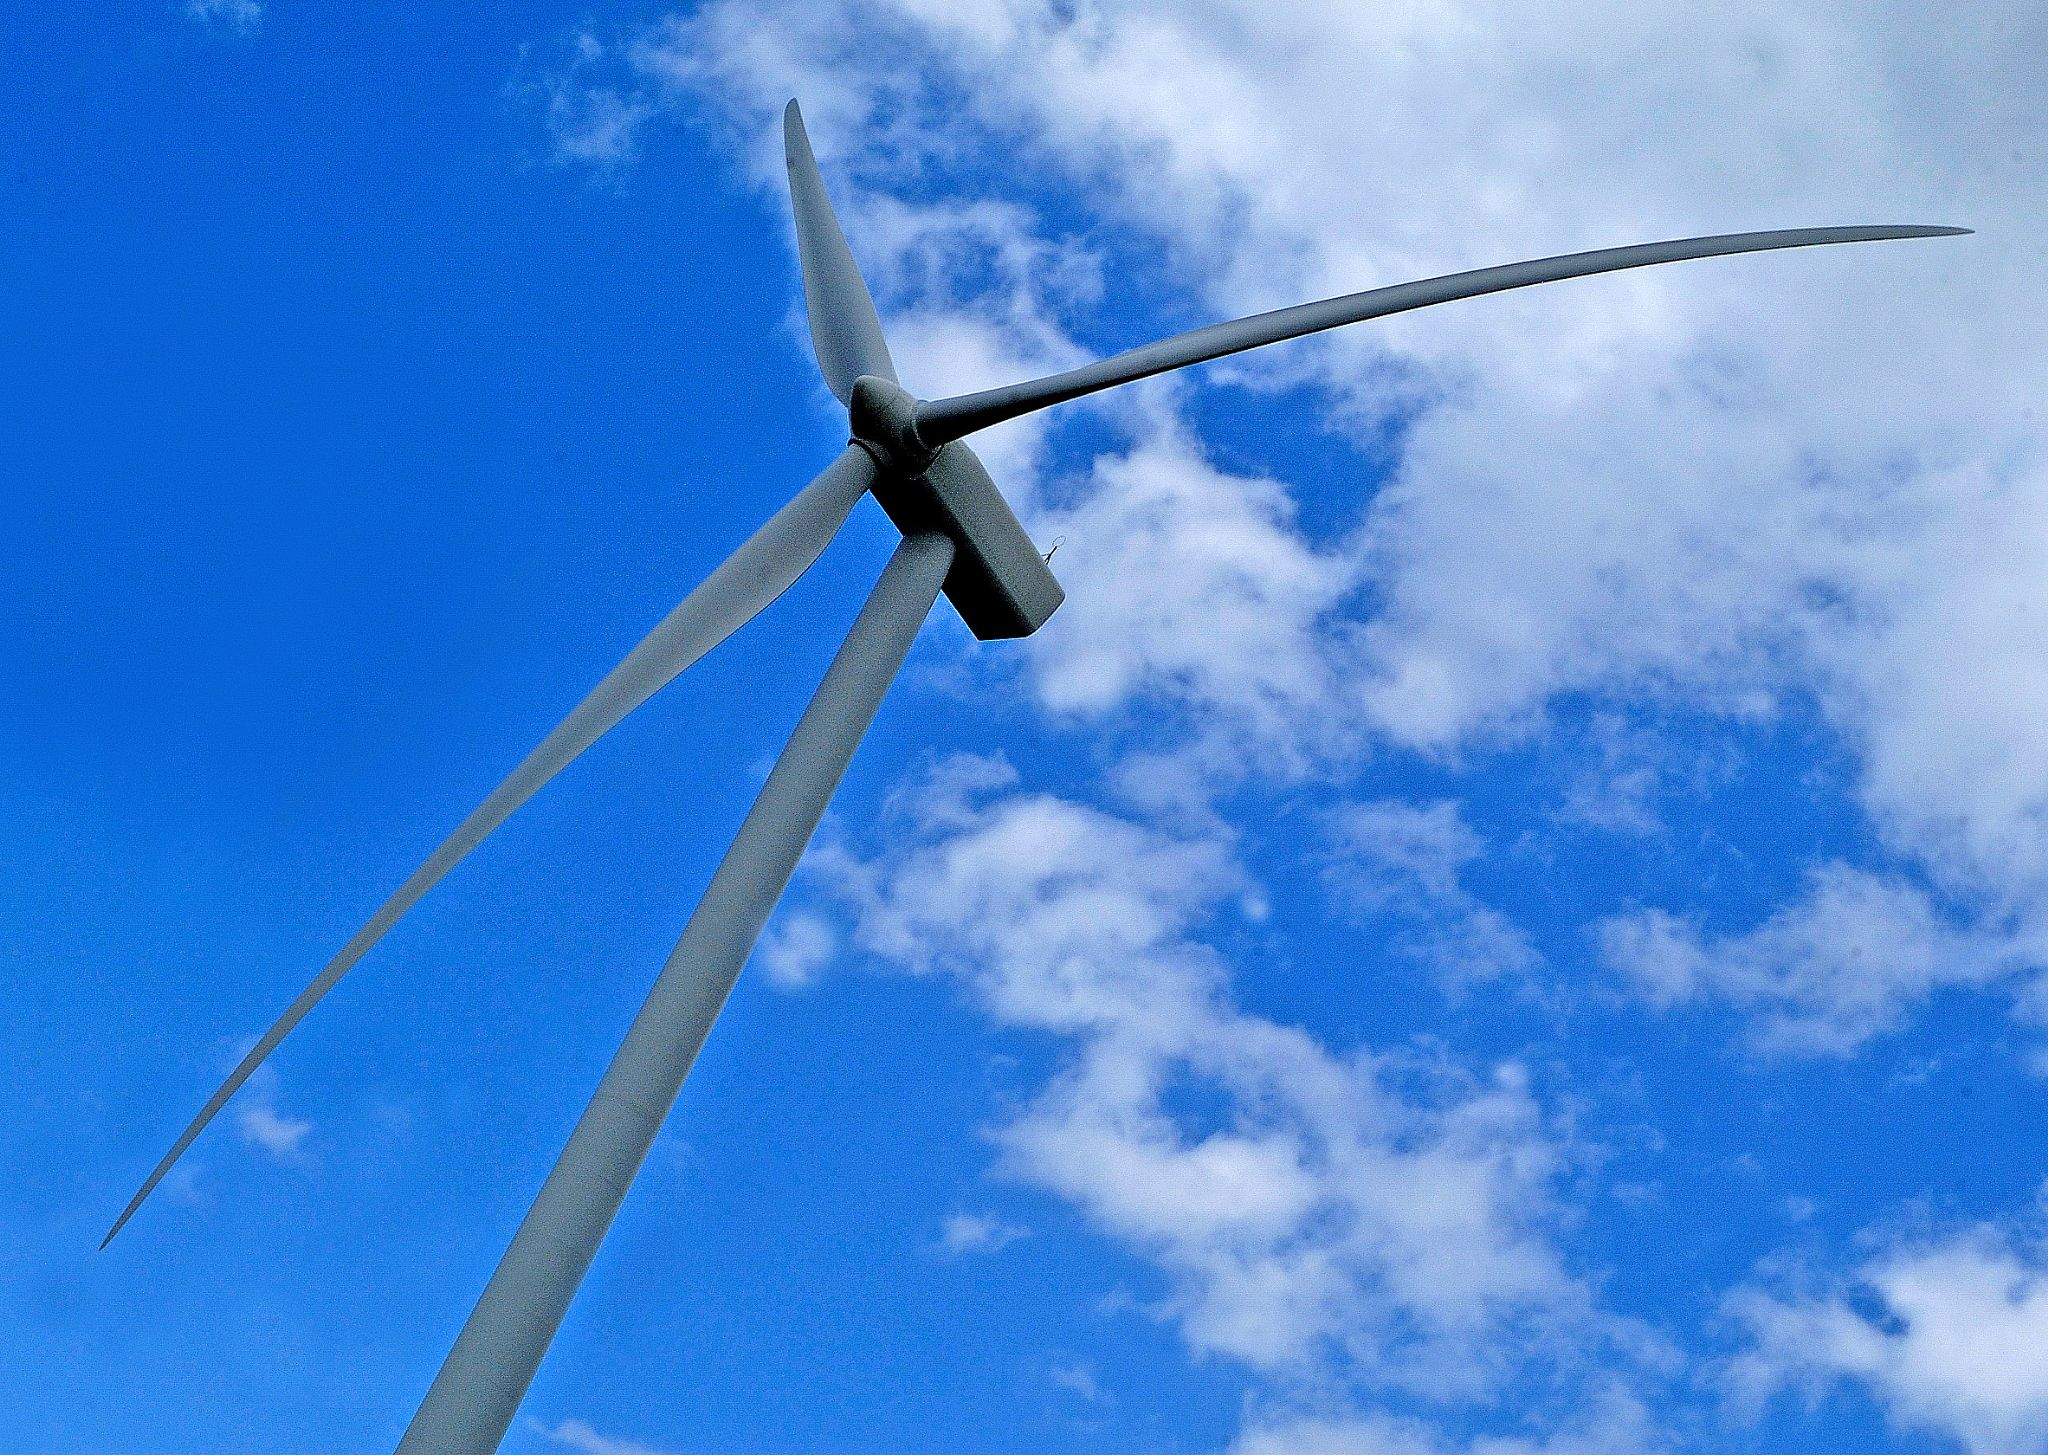 Between Mayenne and Ceauce wind turbine by Malcolm White